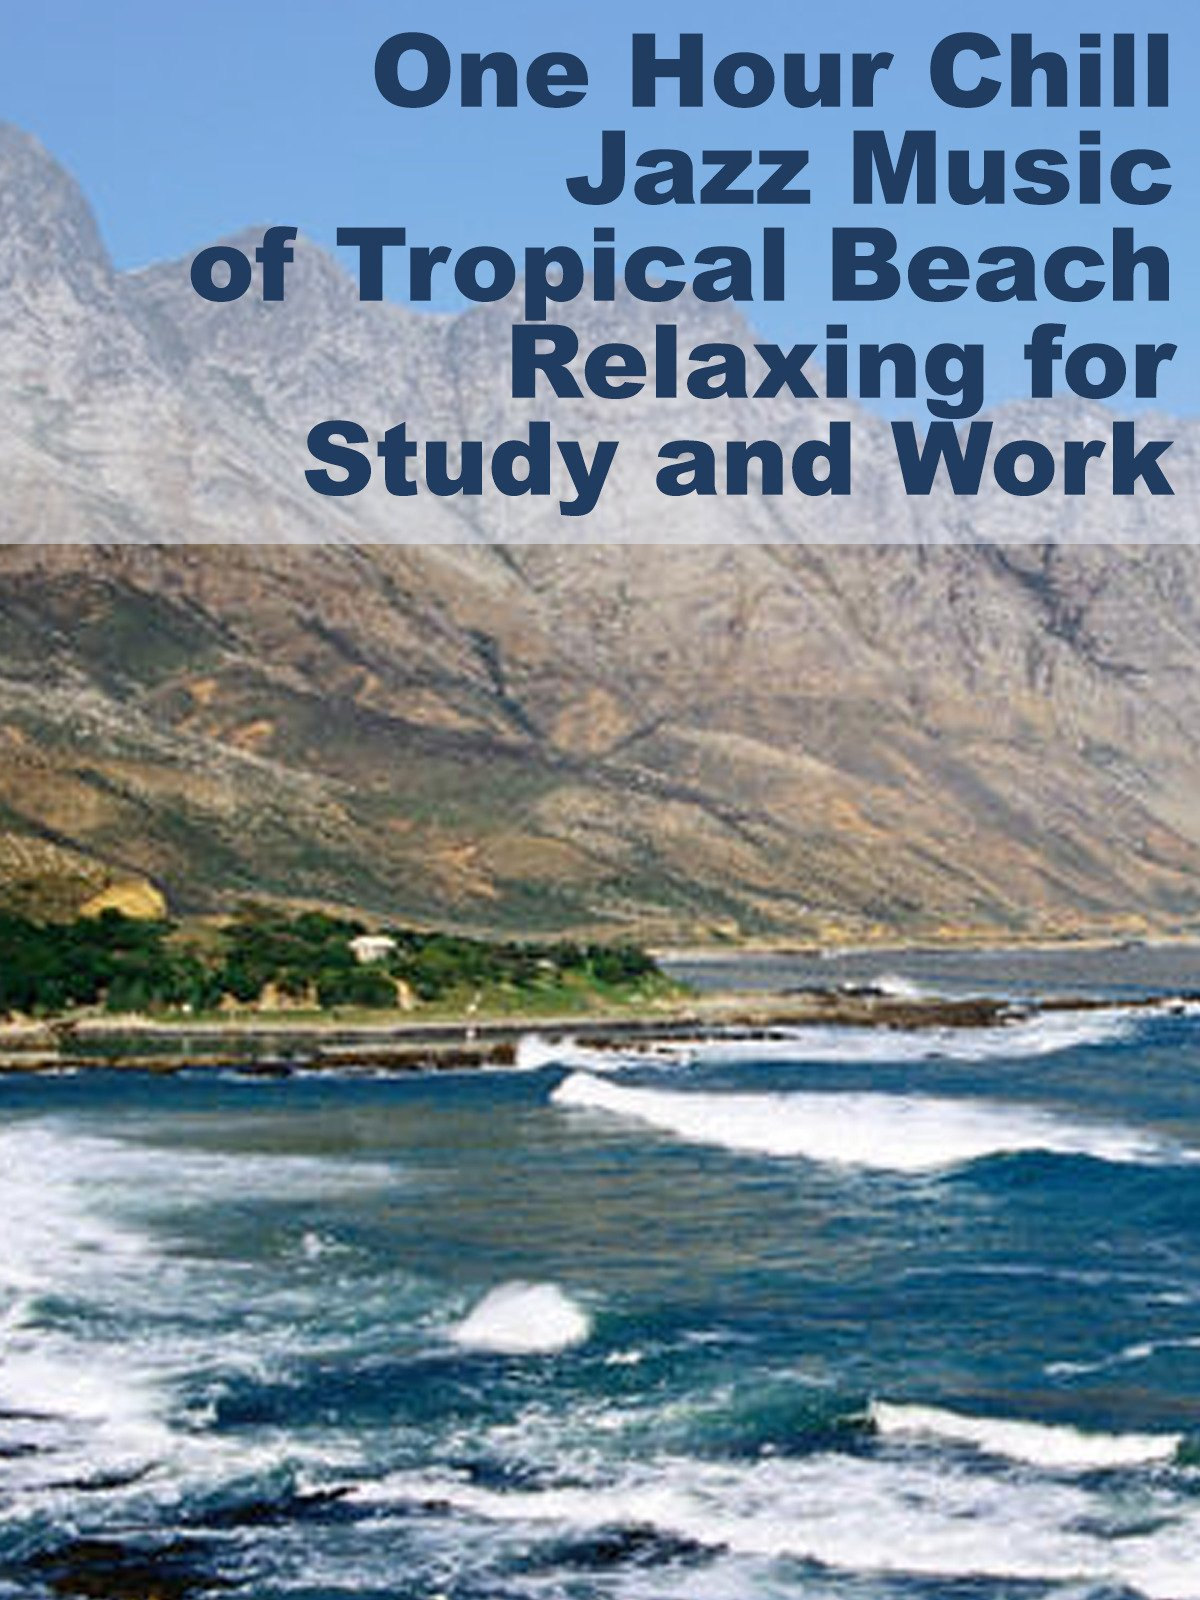 One Hour Chill Jazz Music of Tropical Beach Relaxing for Study and Work